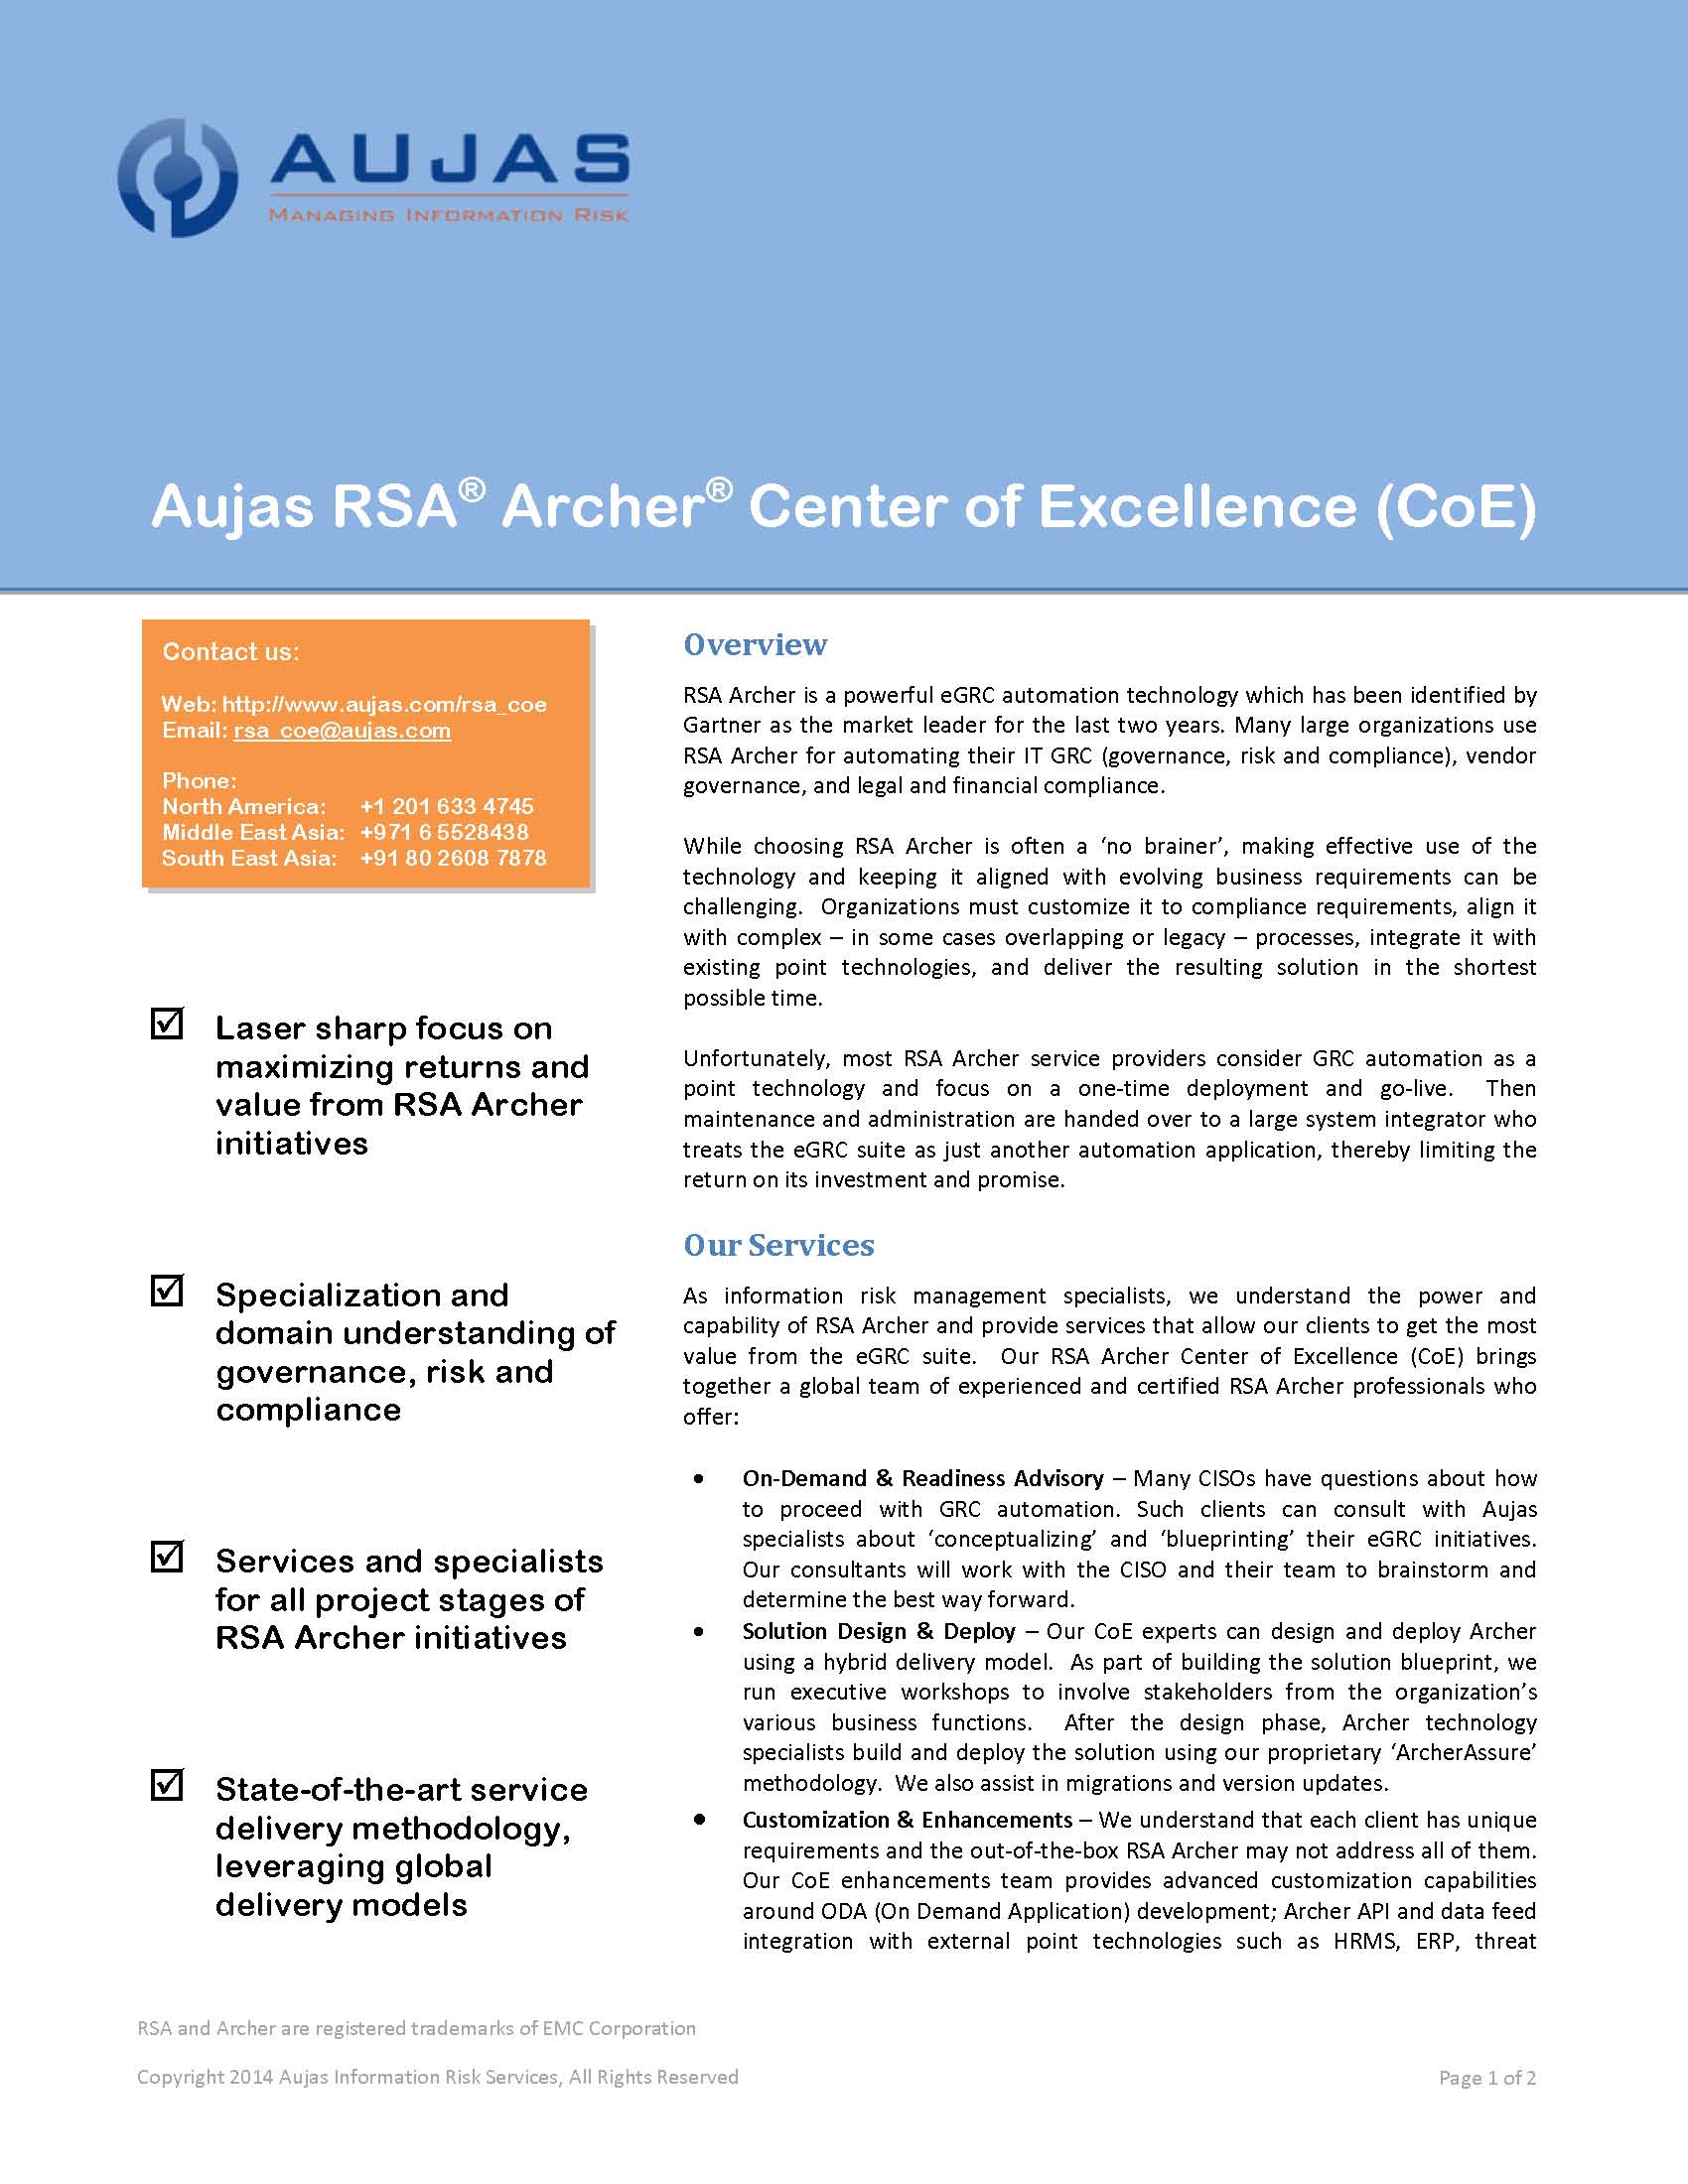 Aujas_RSA_Archer_CoE_Services_Brief_LK_FINAL_Page_1-1.jpg